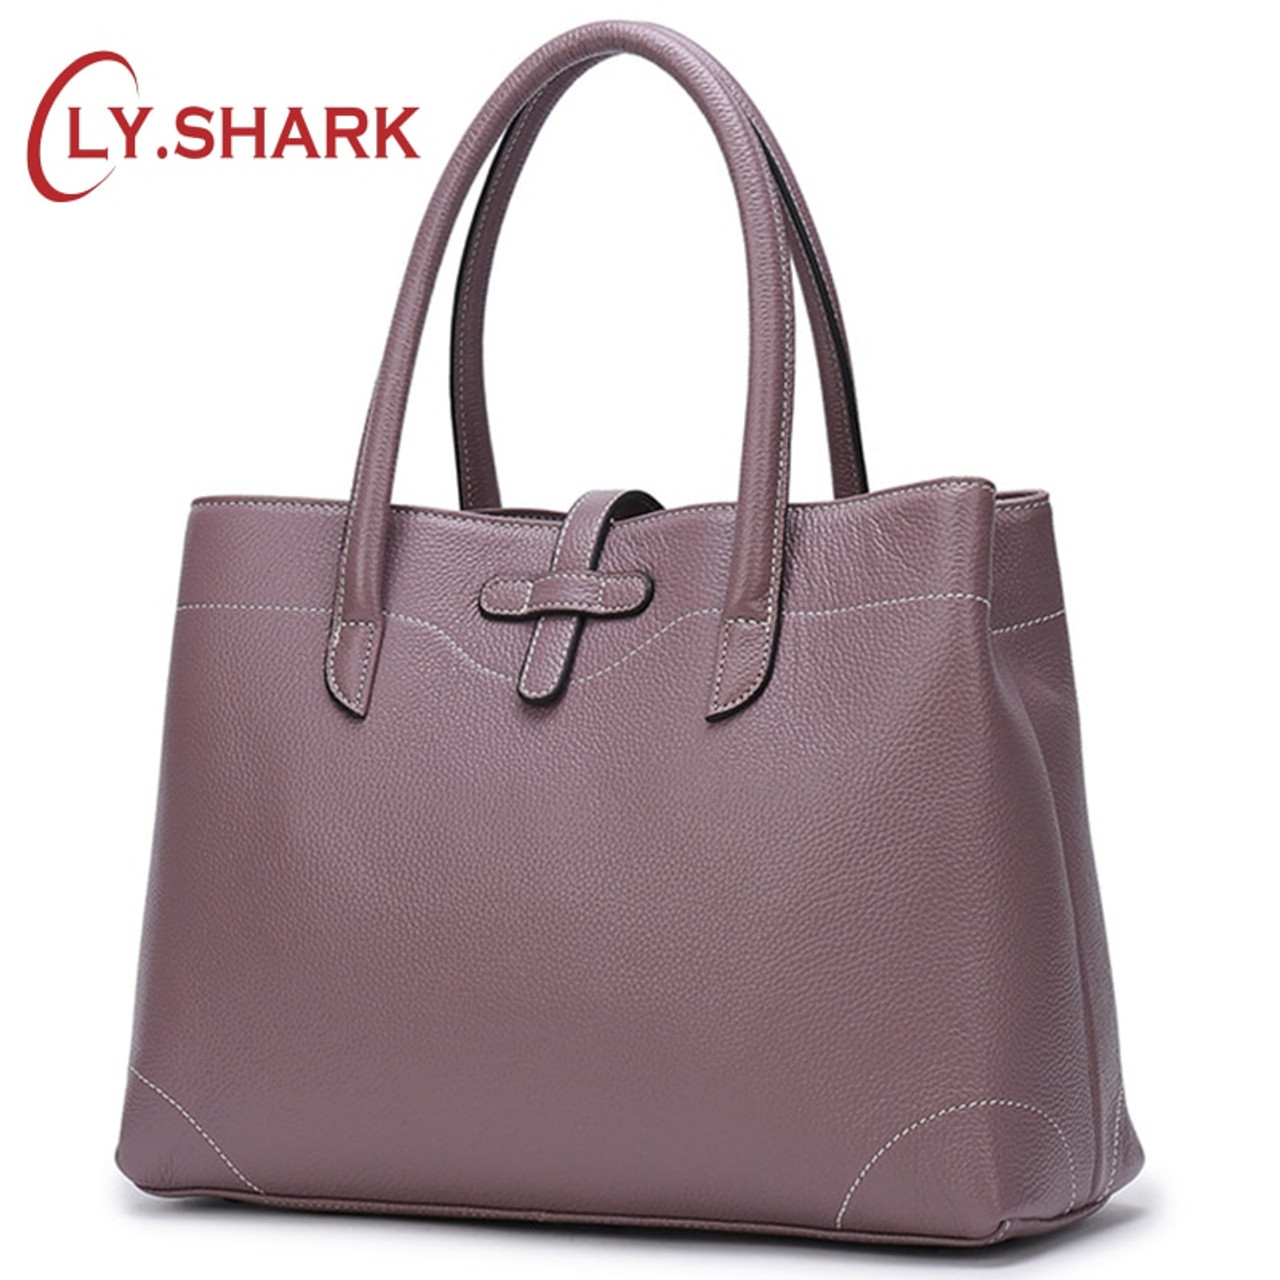 34904cb75fe90 SHARK Luxury Handbags Women Bags Designer Genuine Leather Bags For Women  Hand bag Female Top-Handle Bag Ladies Tote 2019 - OnshopDeals.Com